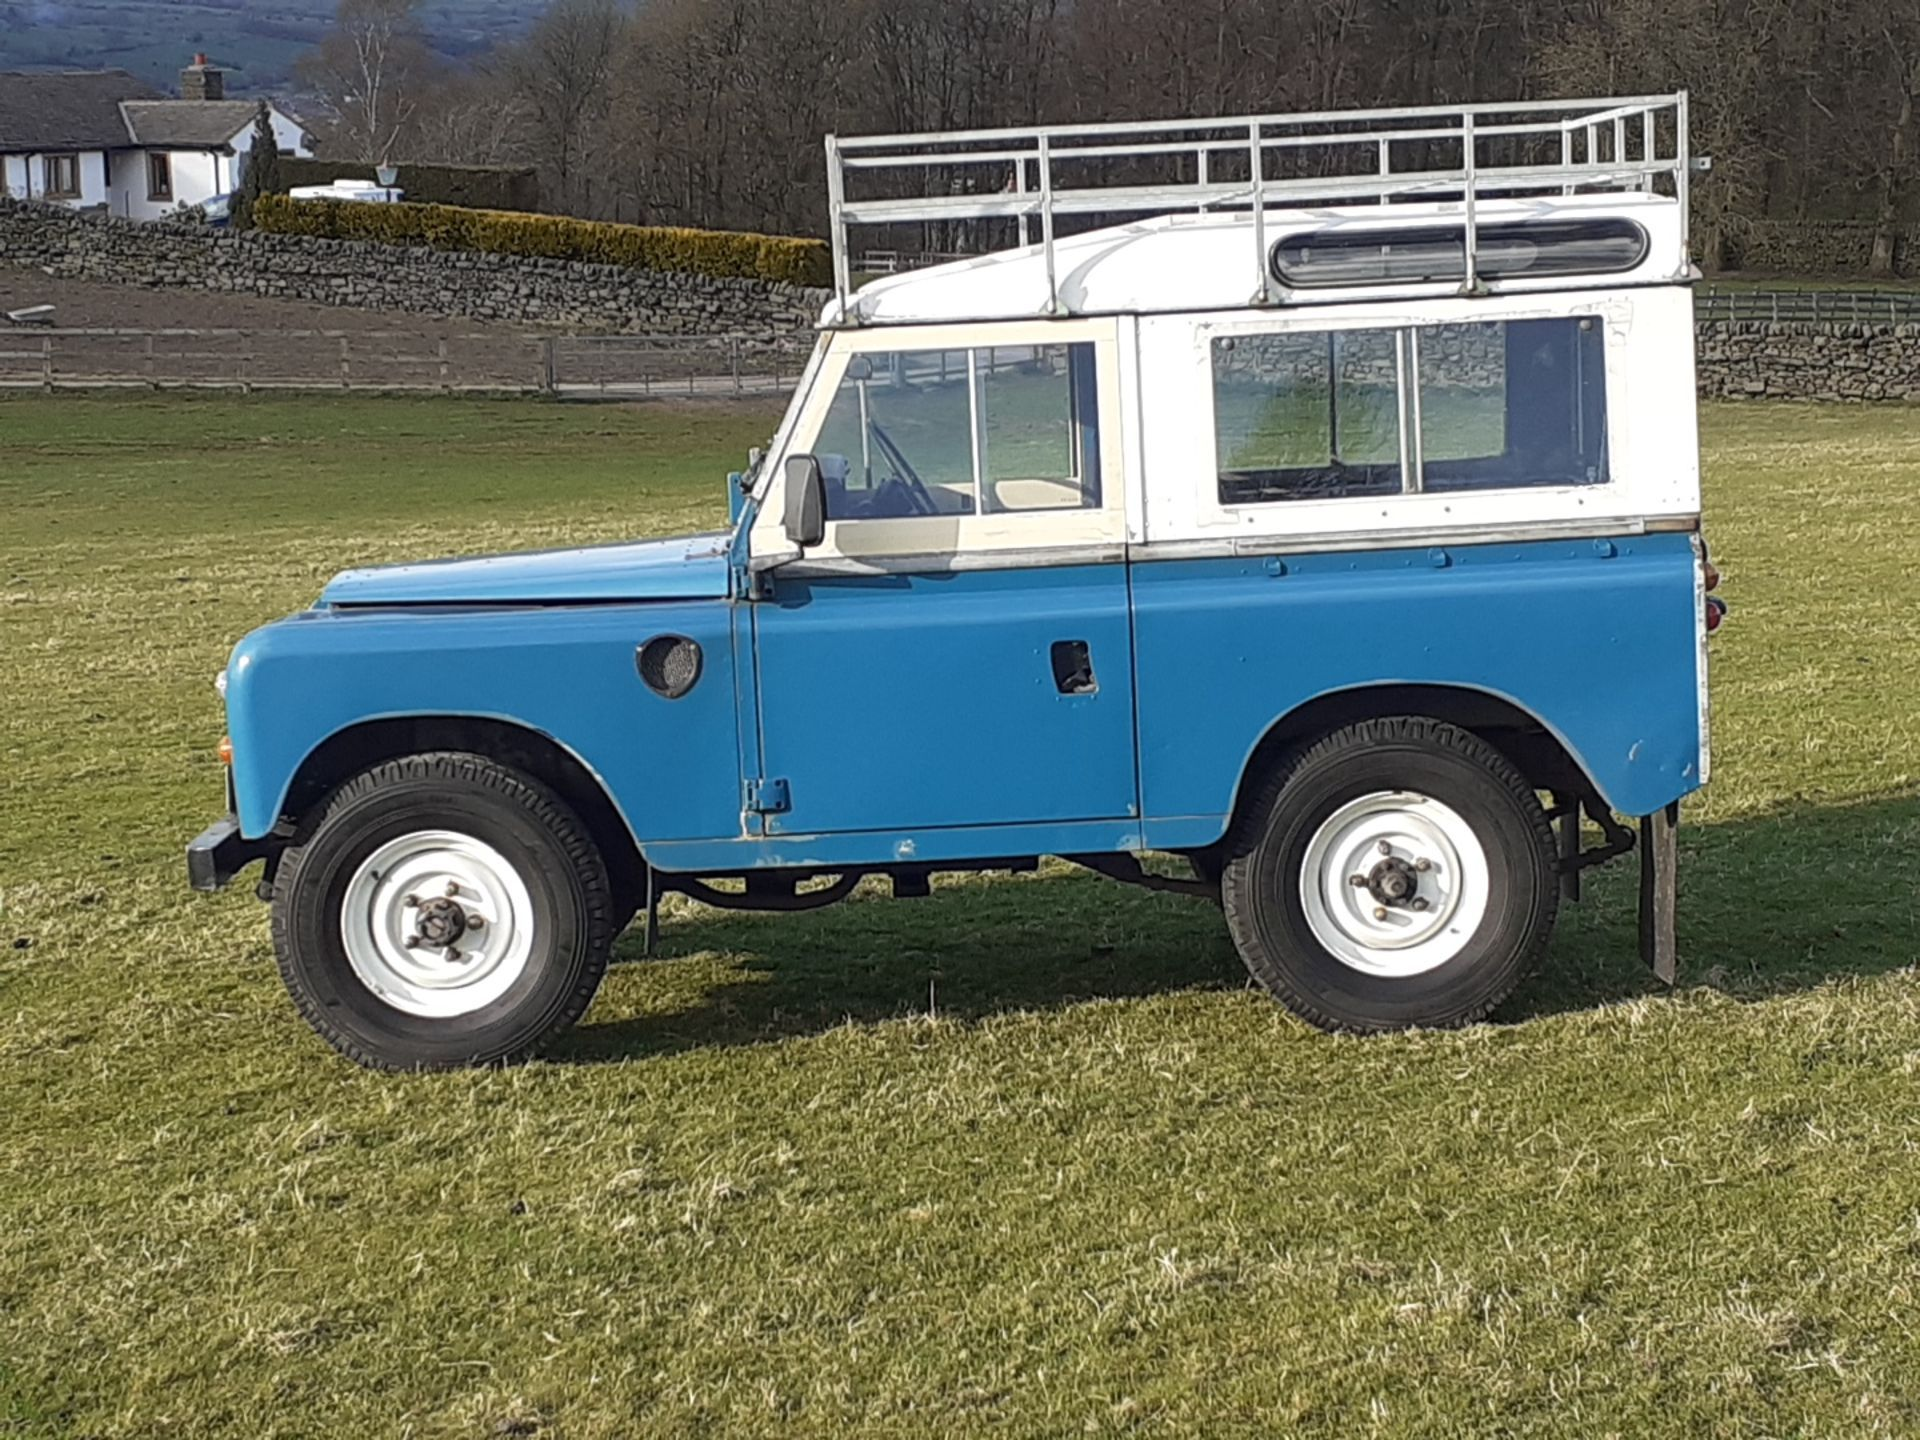 1980 LAND ROVER SERIES III CLASSIC STATION WAGON, TAX AND MOT EXEMPT *NO VAT* - Image 7 of 22